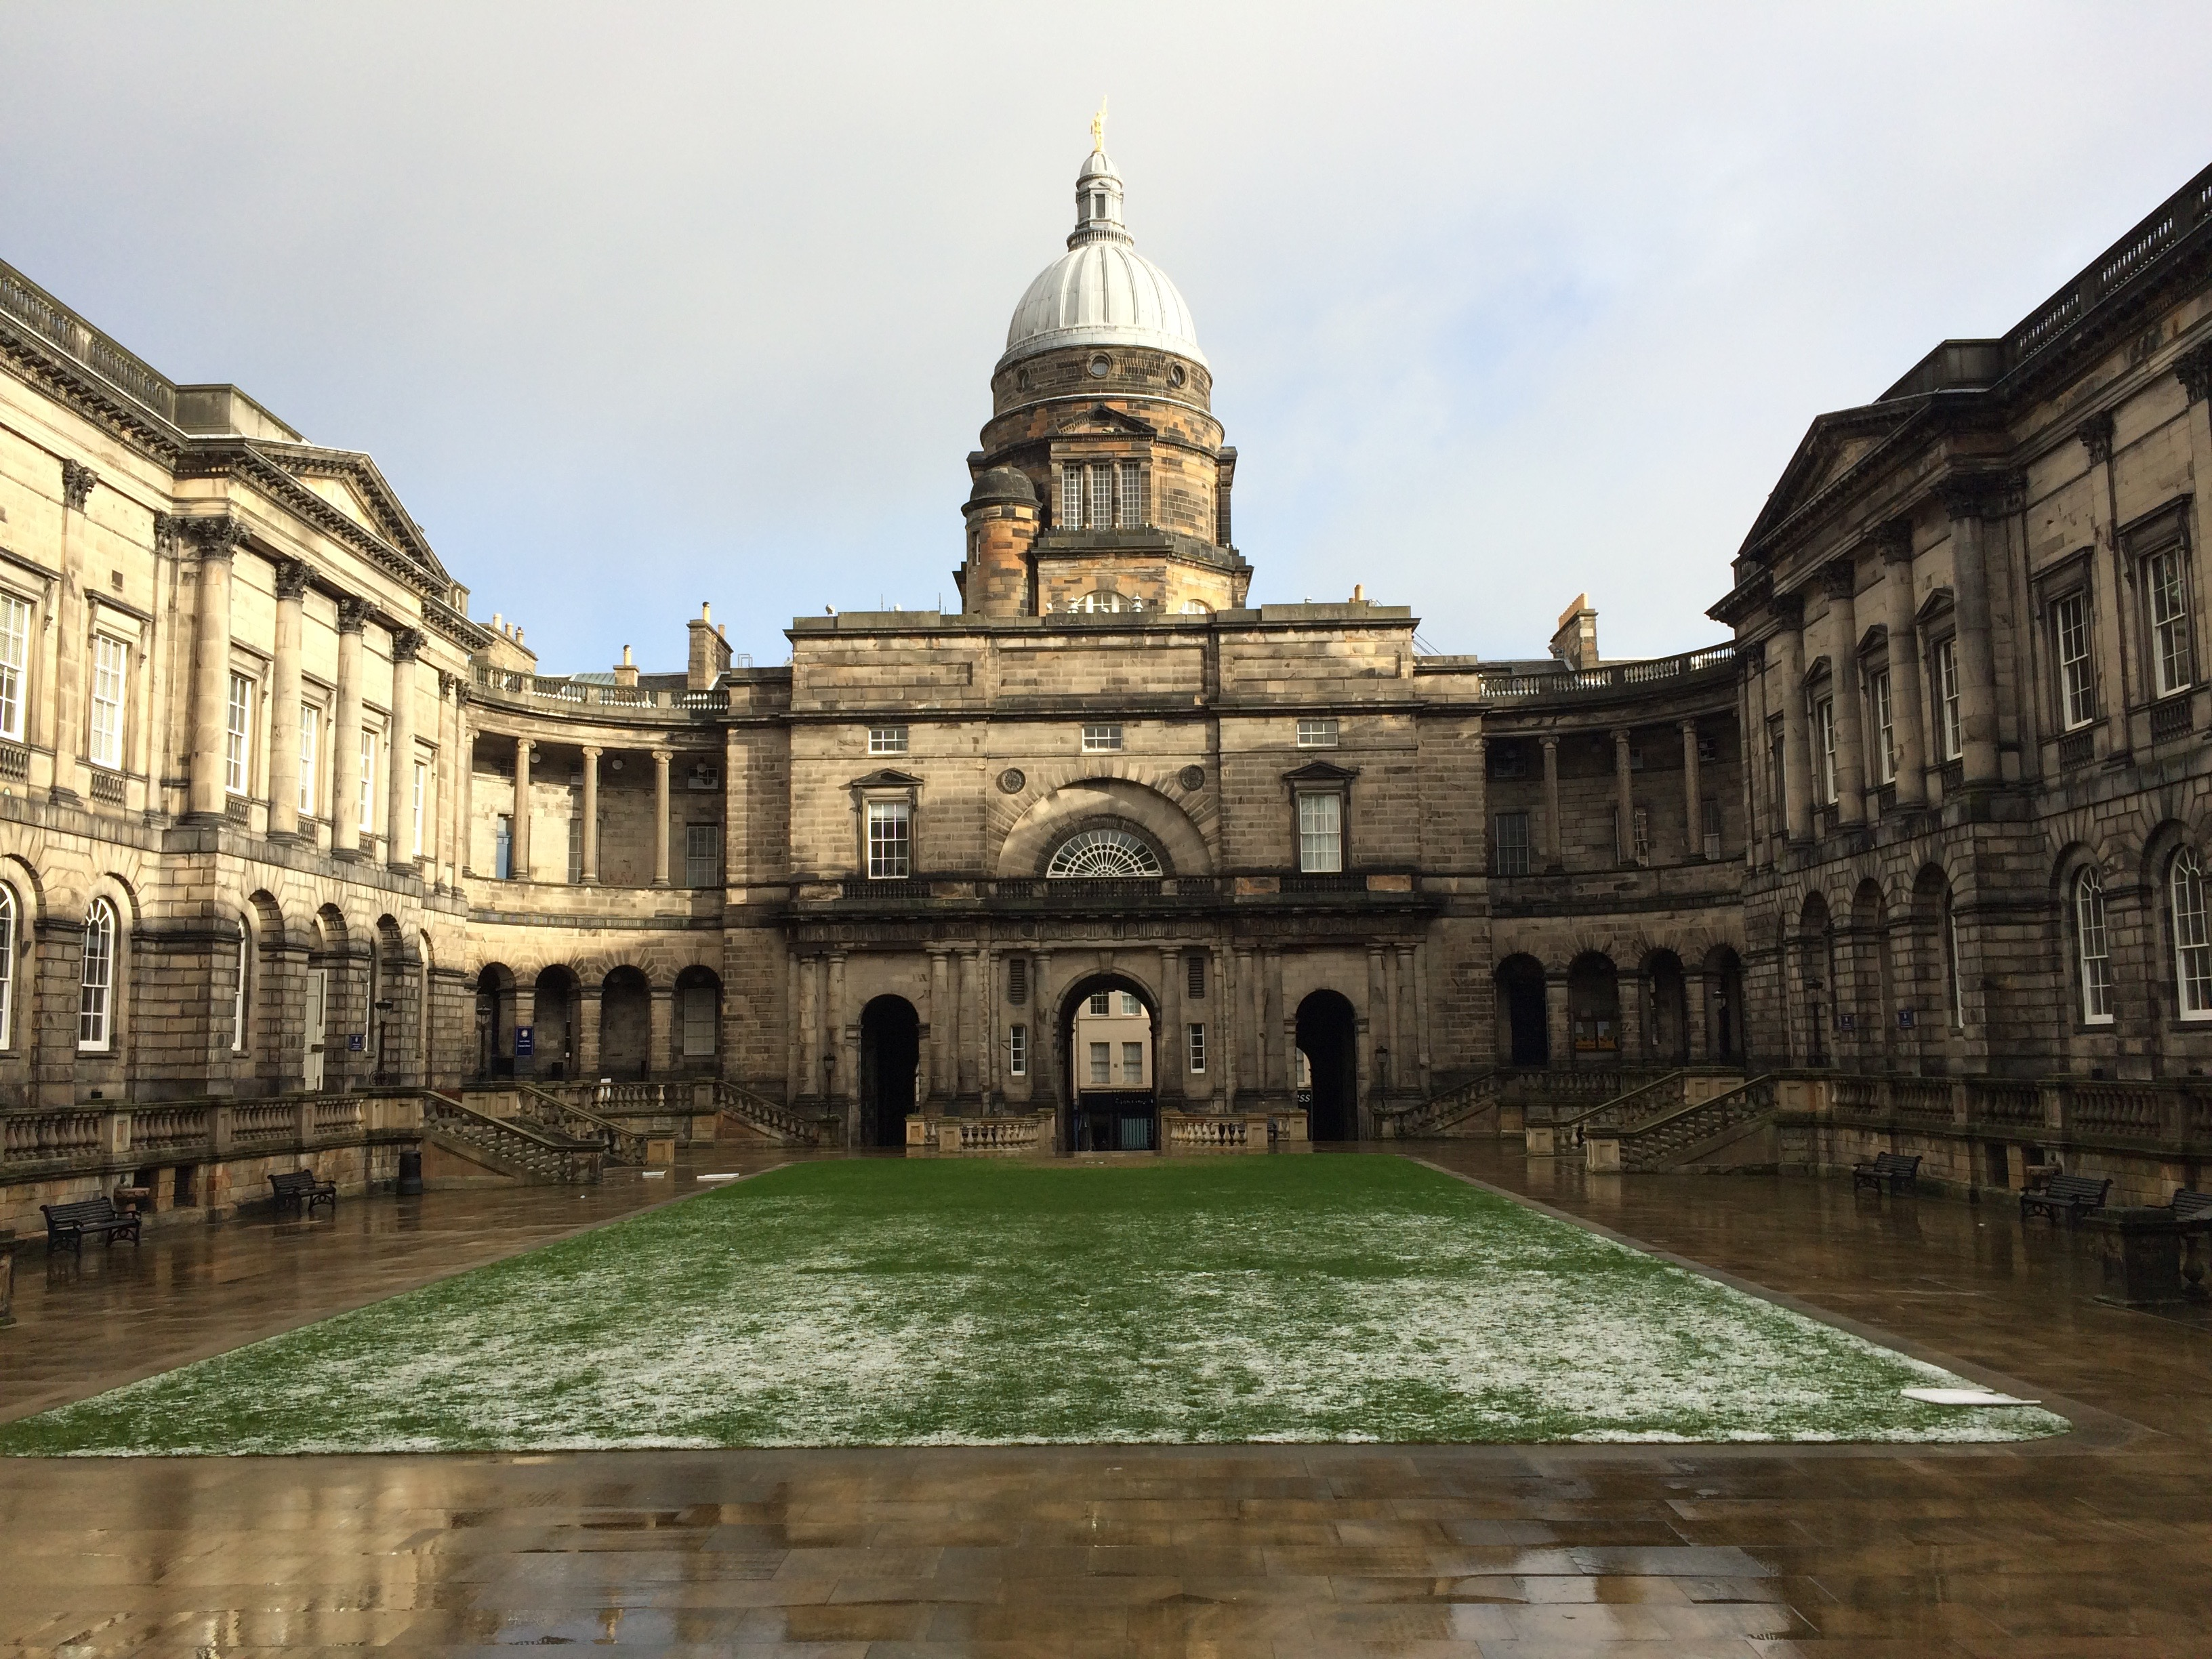 University of Edinburgh's old campus, after the rain